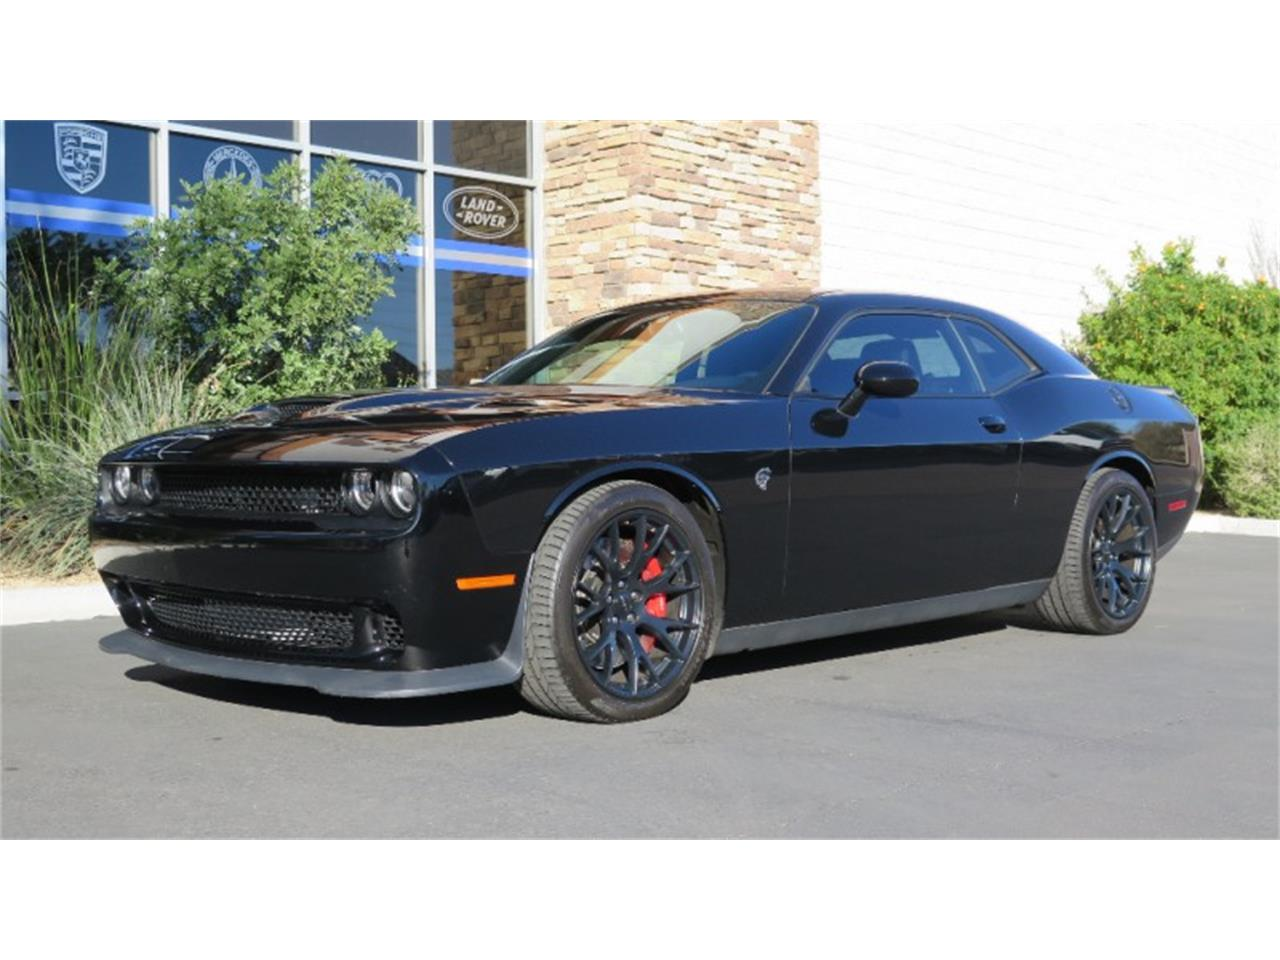 2015 Dodge Challenger Hellcat For Sale >> 2015 Dodge Challenger Srt Hellcat For Sale Classiccars Com Cc 954824